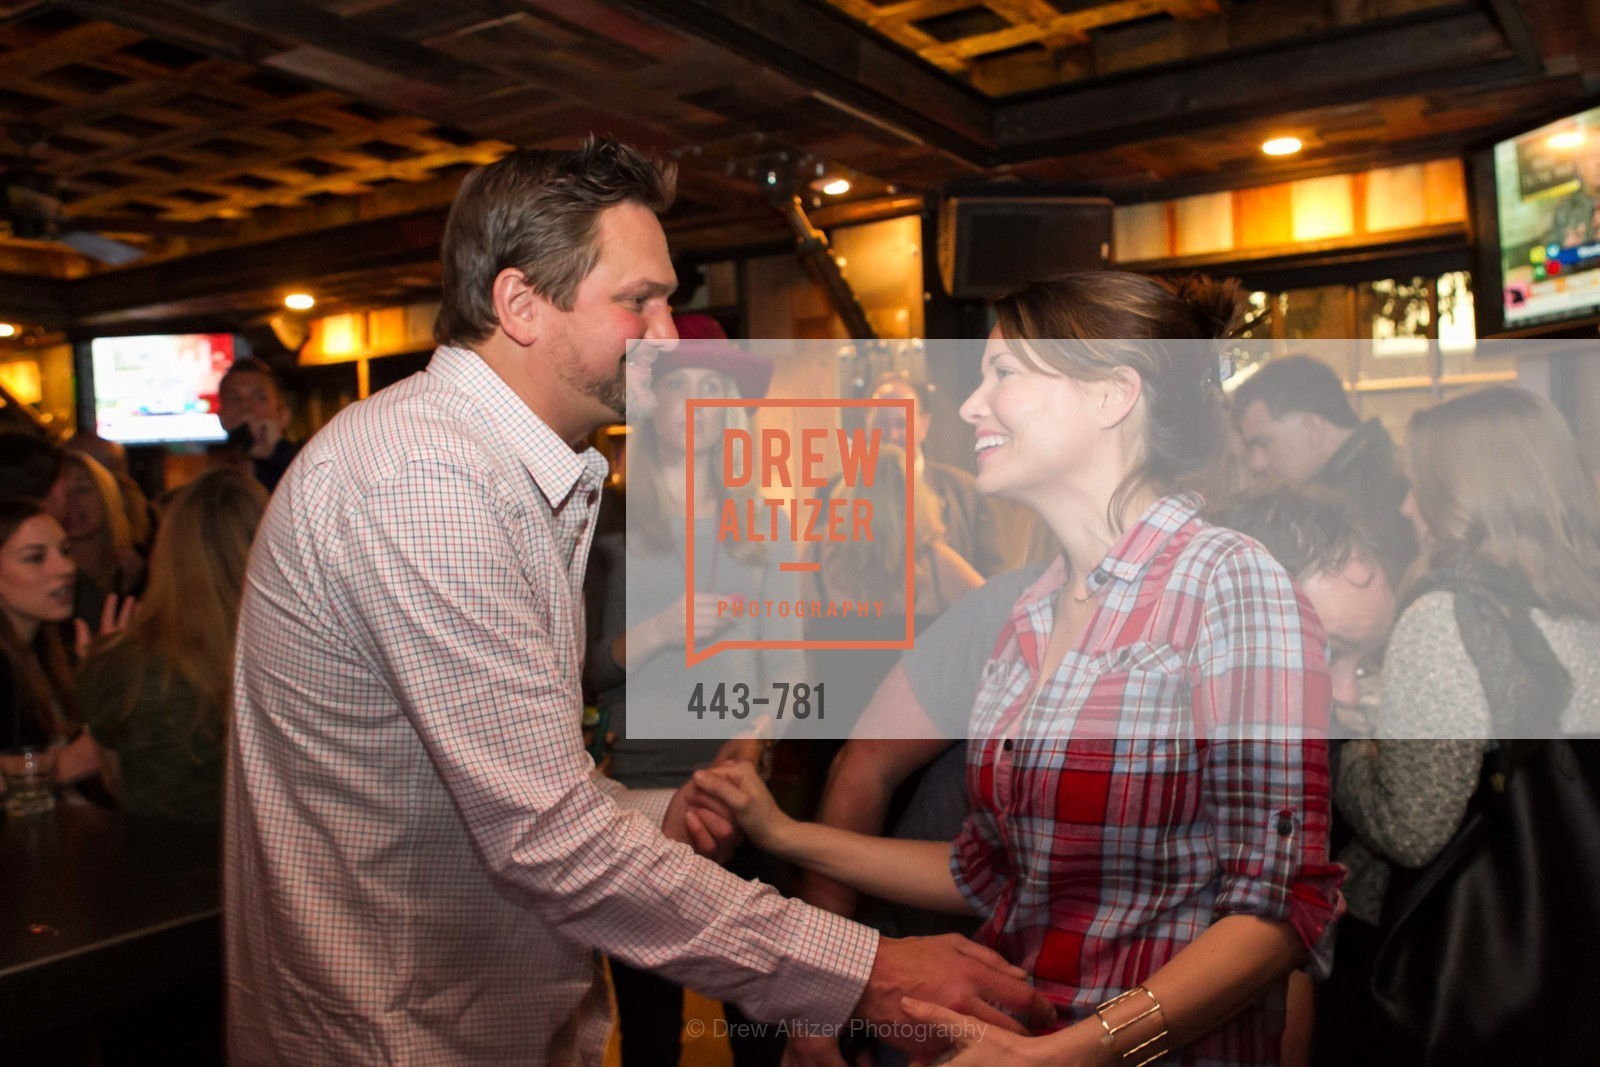 Extras, Rooms That ROCK FOR CHEMO Fundraiser, April 2nd, 2015, Photo,Drew Altizer, Drew Altizer Photography, full-service agency, private events, San Francisco photographer, photographer california